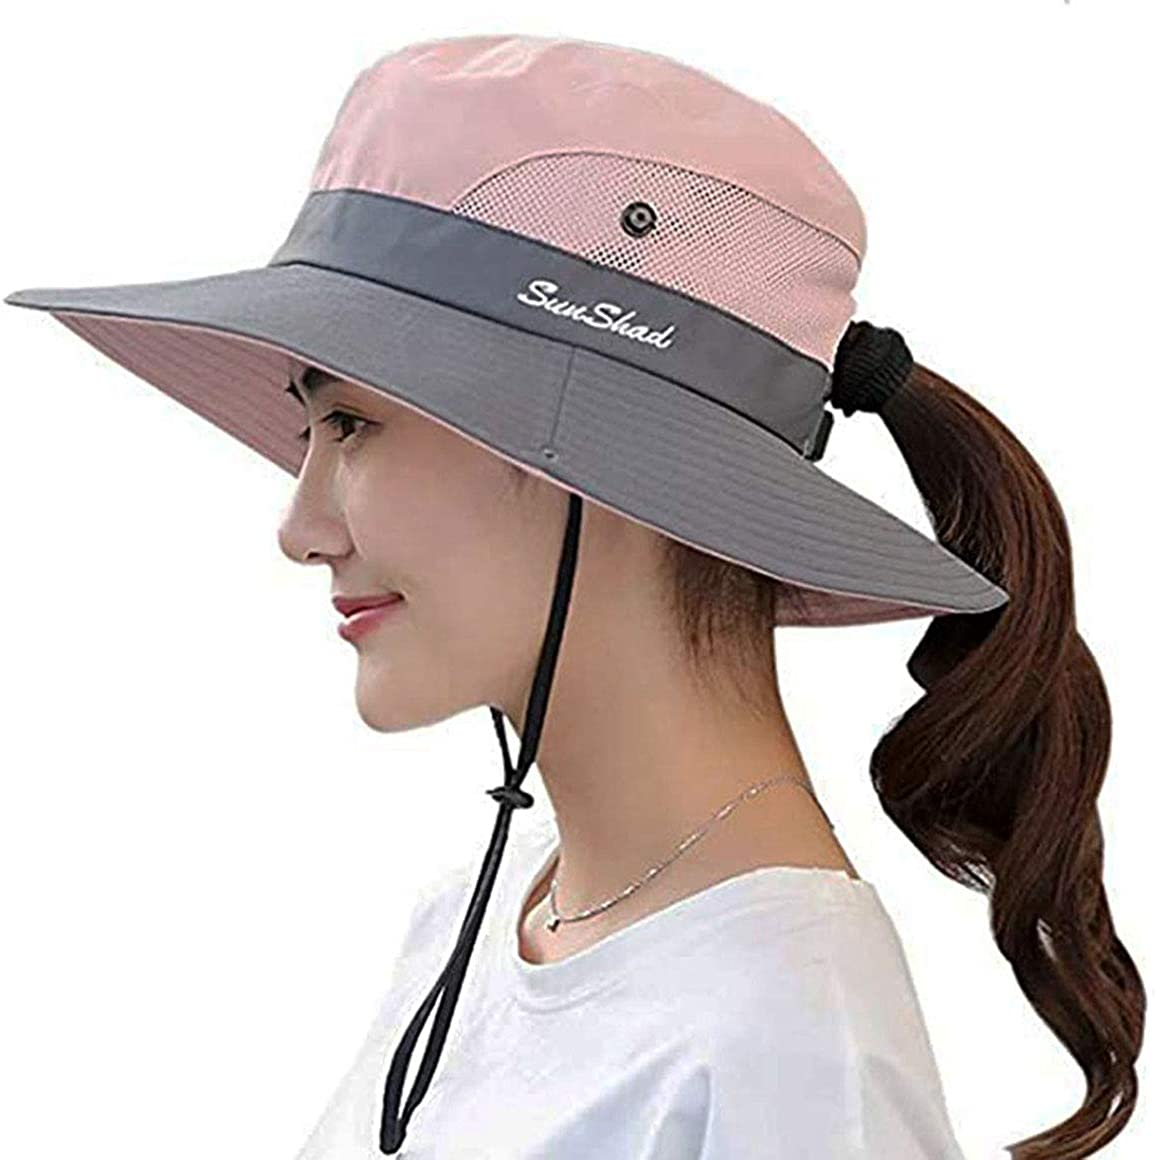 Ponytail Sun Hats for Women with UV Protection Wide Brim High Bun Visor Fit for 21